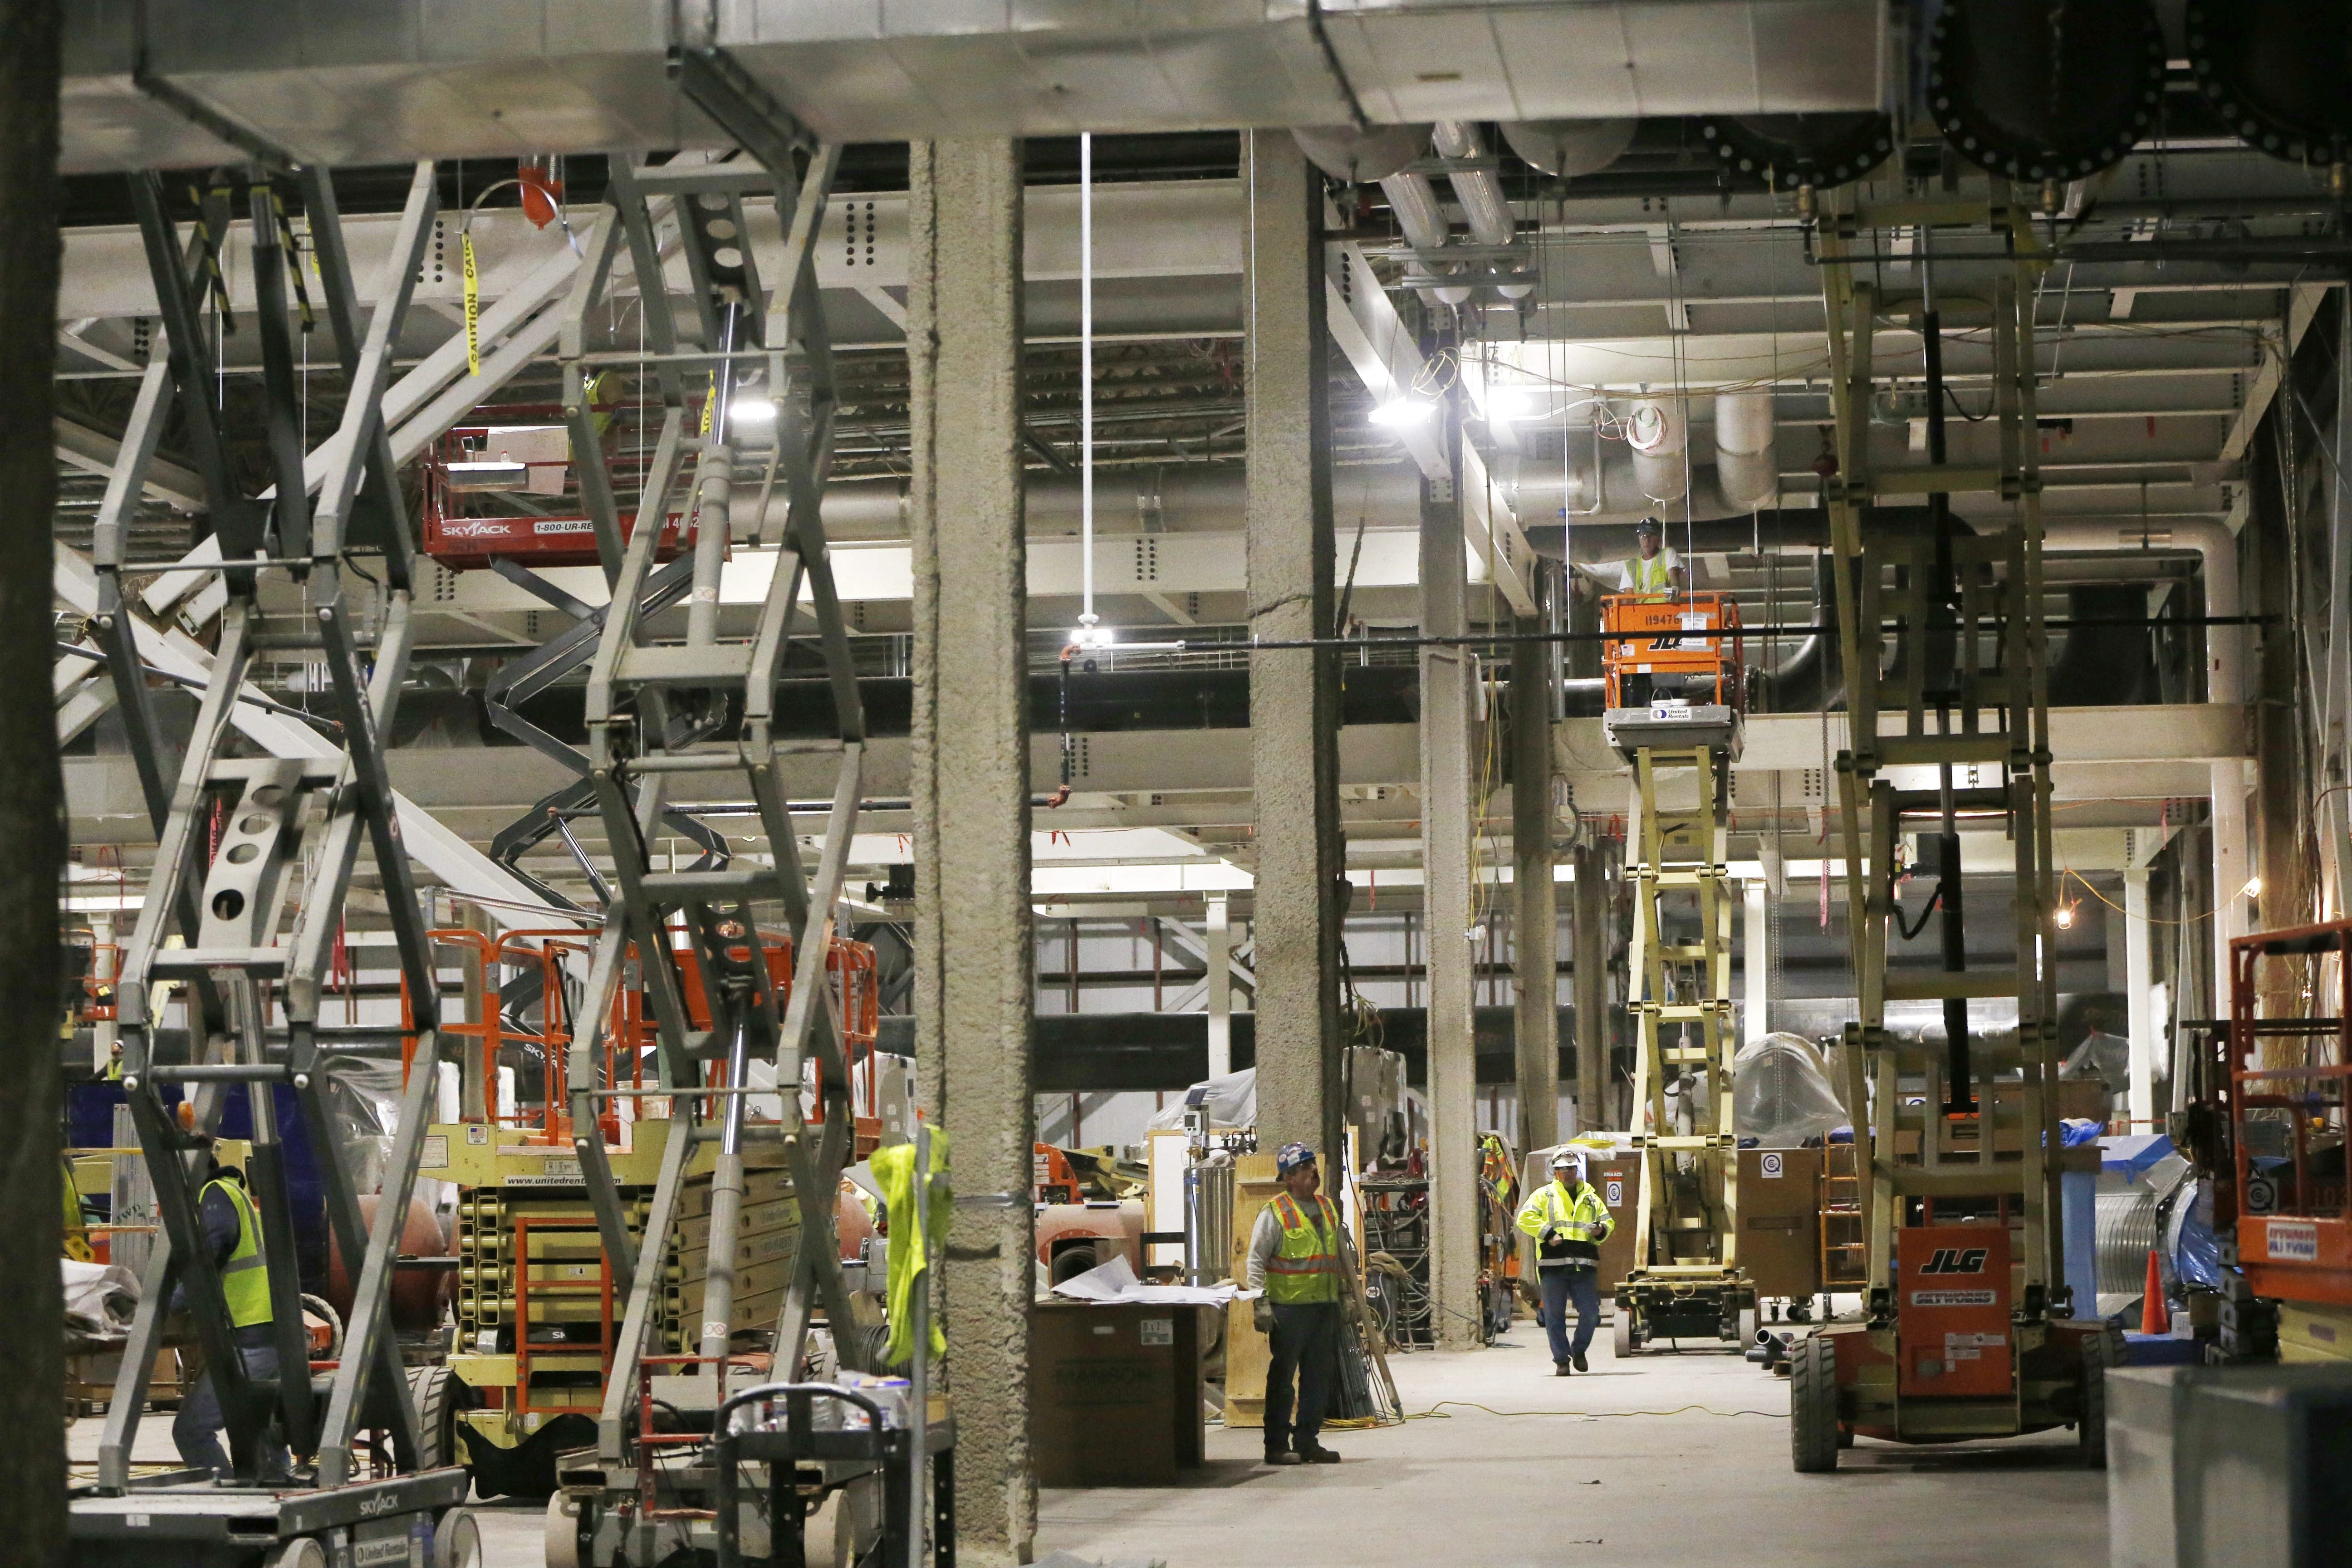 Workers install utilities in the enormous mechanical building at the SolarCity production facility at RiverBend earlier this month. Construction jobs at SolarCity and the Buffalo Niagara Medical Campus have helped to keep the region's unemployment rate down.